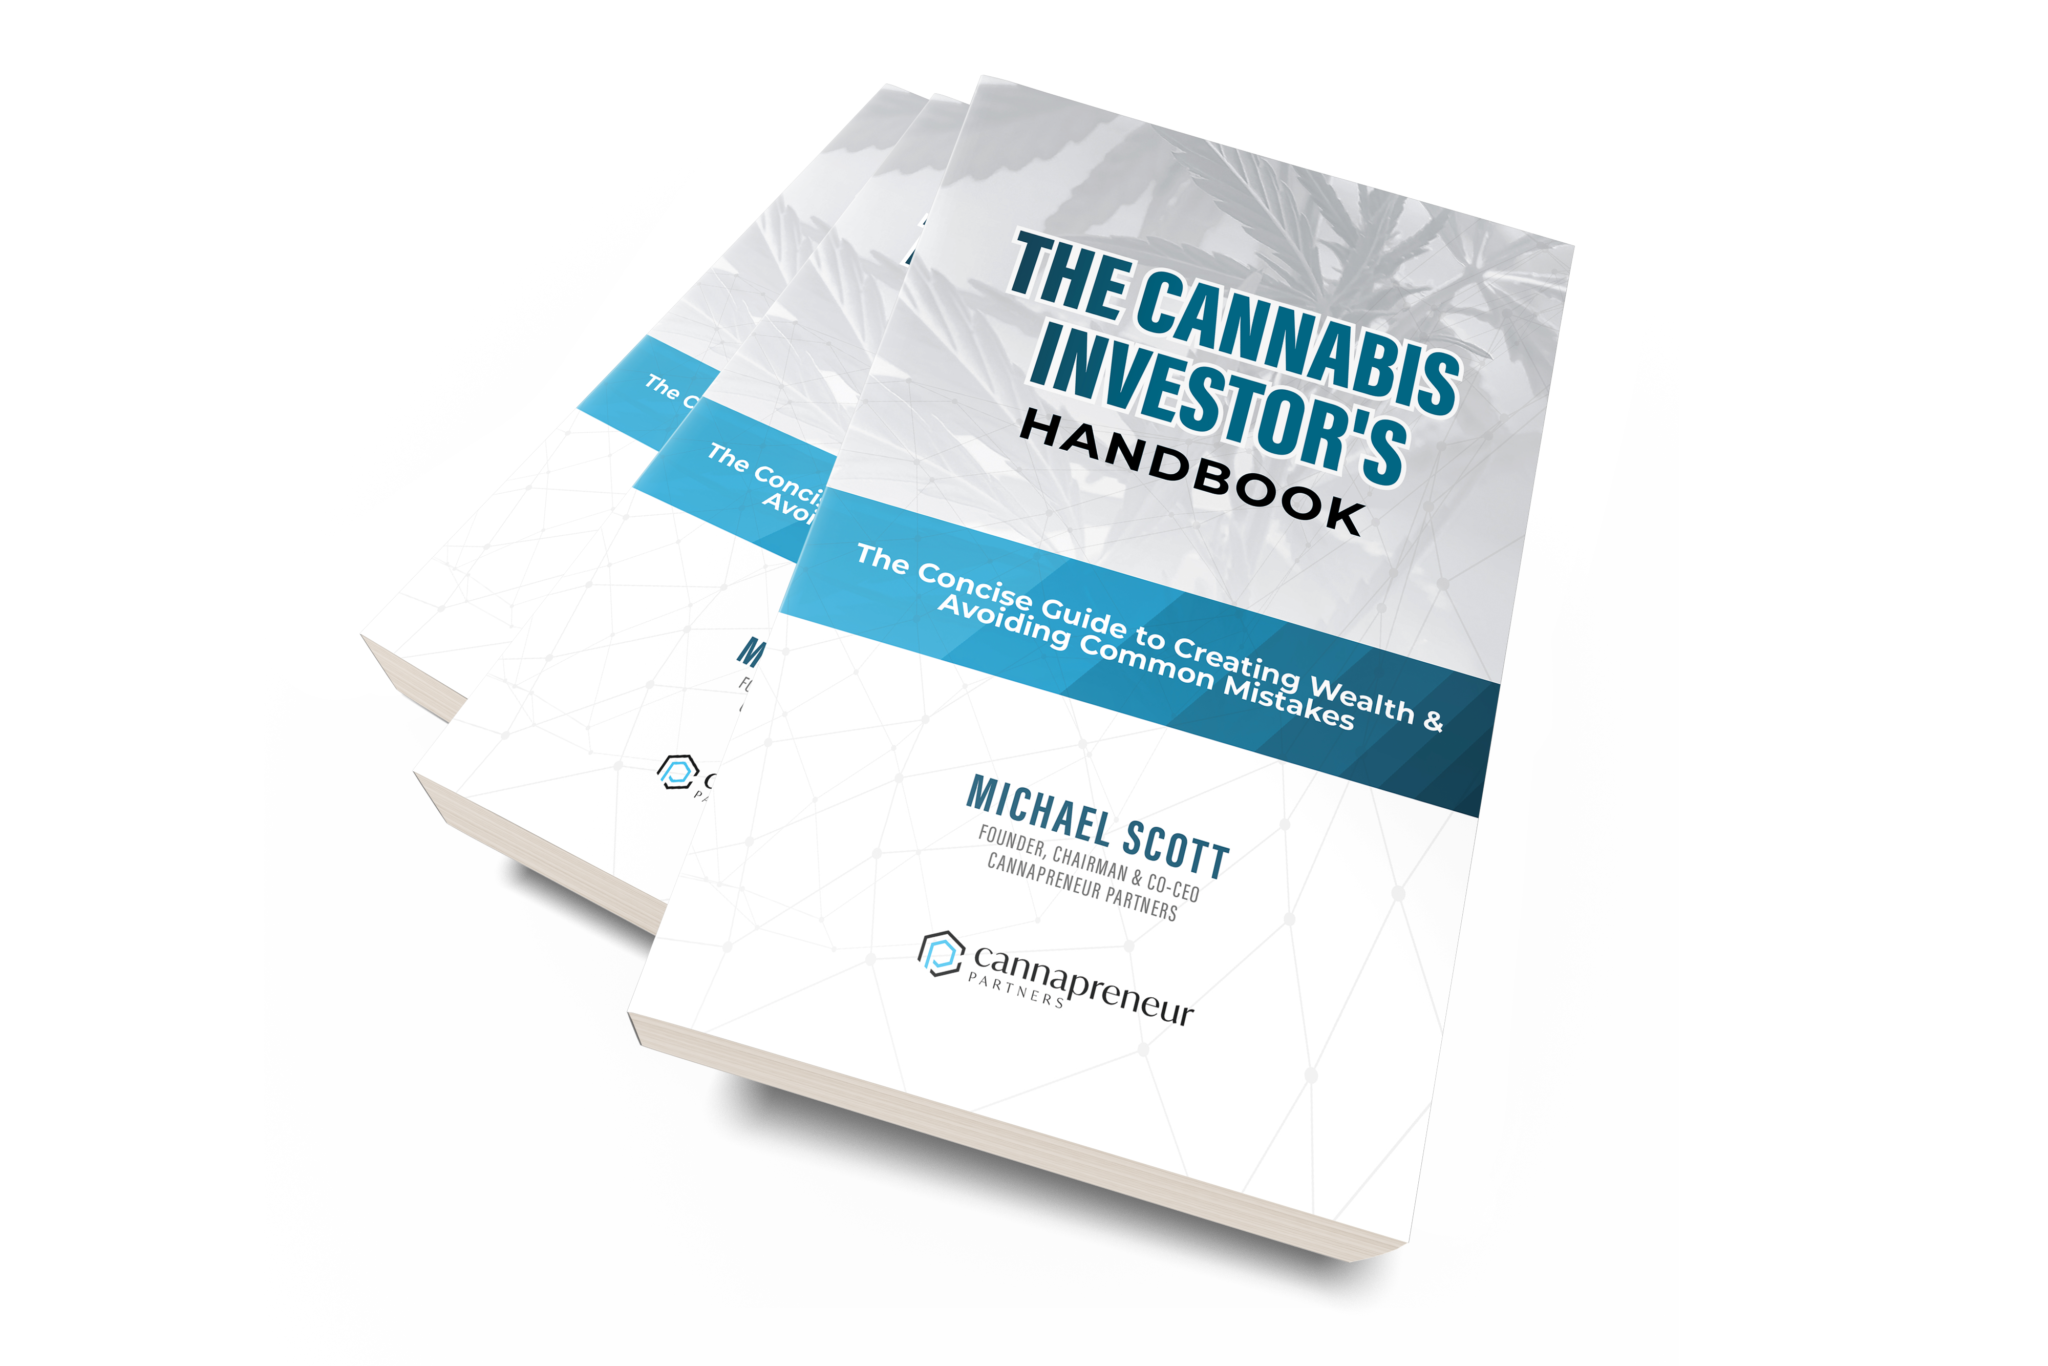 """Cannapreneur Partners Announces the Release of """"The Cannabis Investor's Handbook"""""""